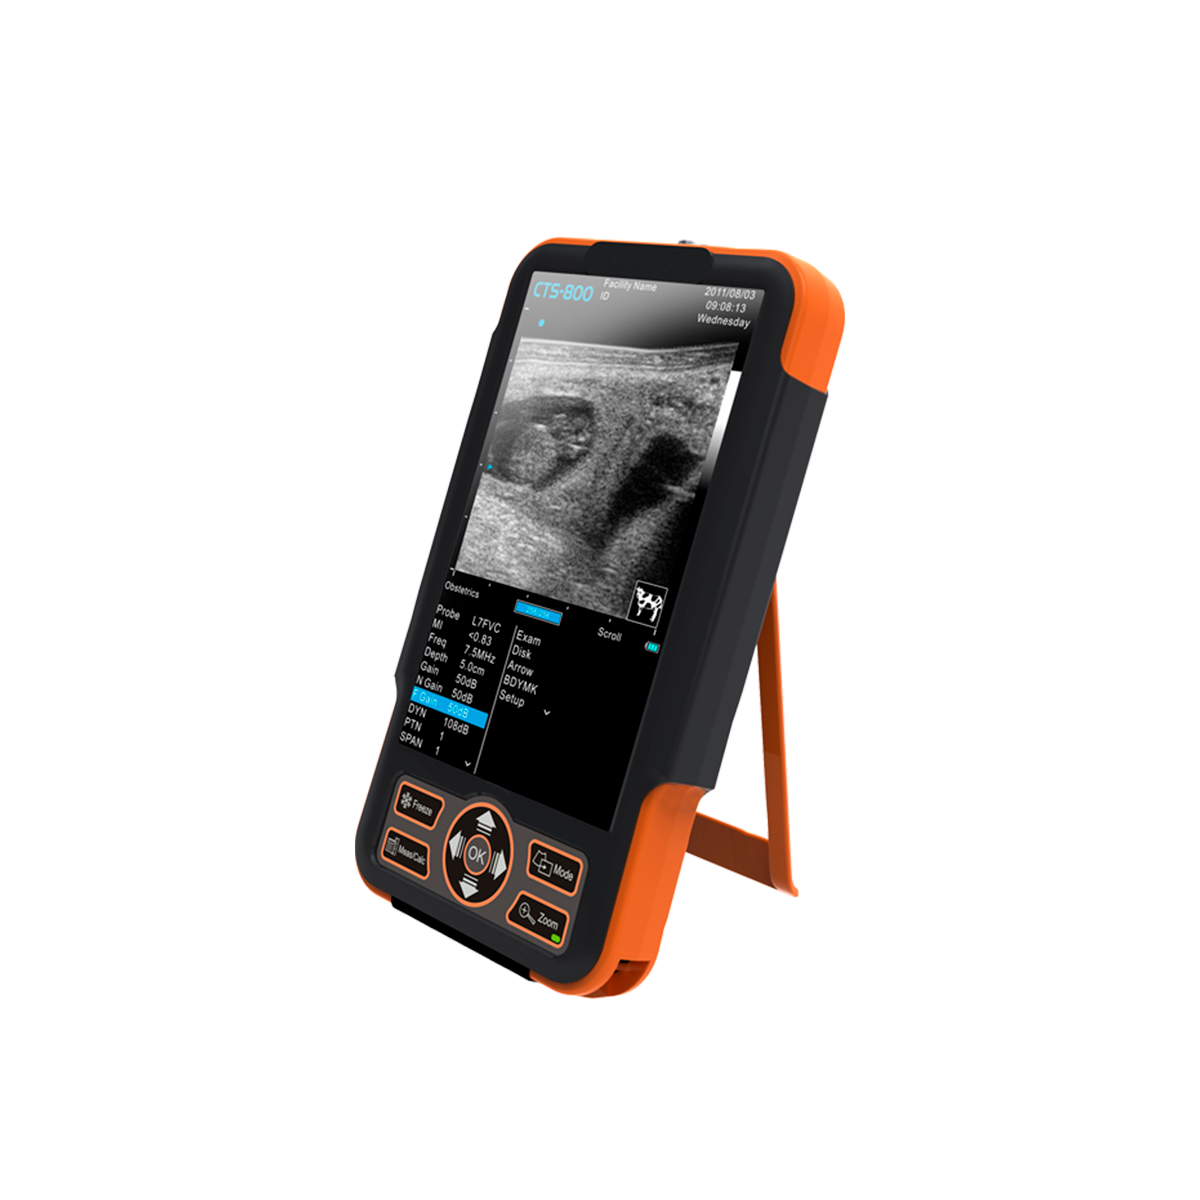 Hand-held ultrasound systems